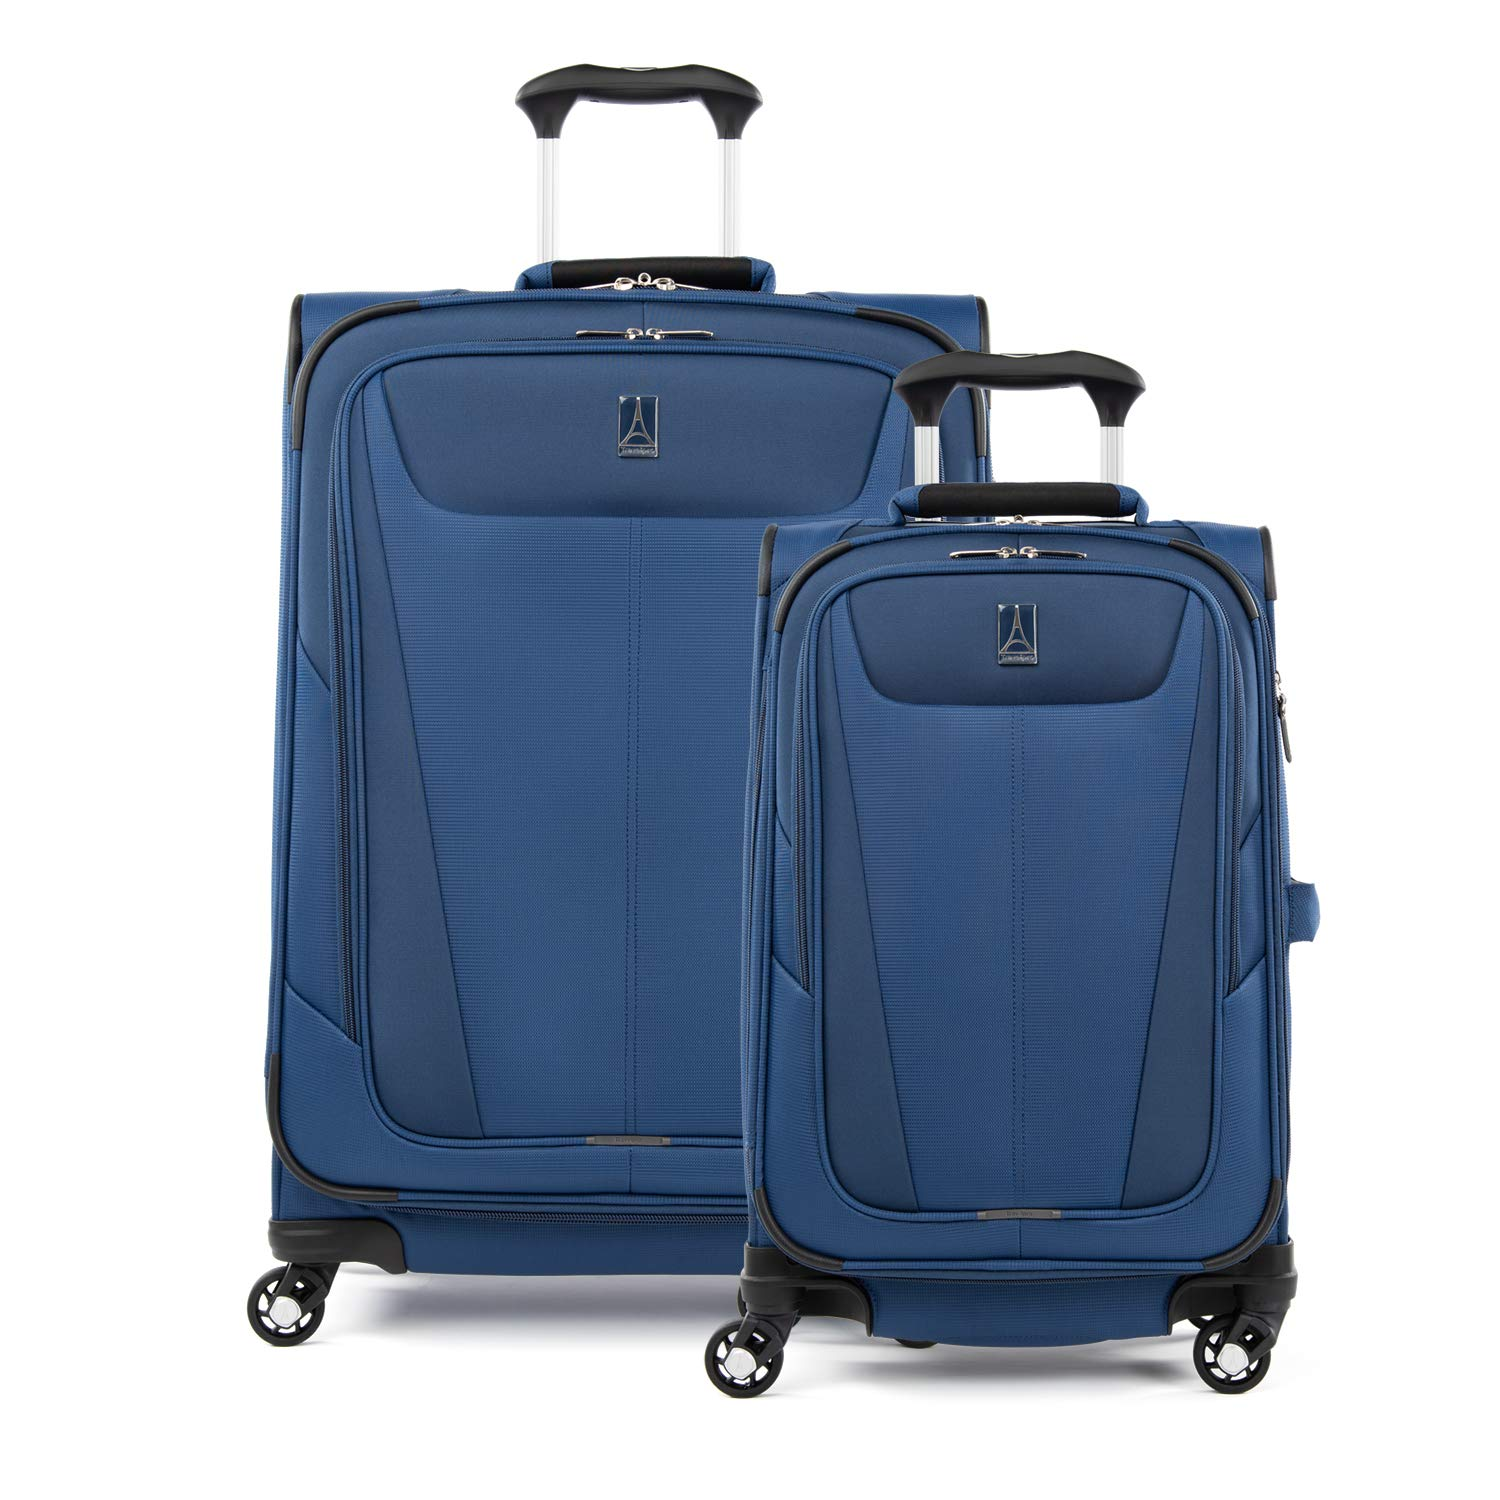 Travelpro Lightweight Expandable Softside Sapphire